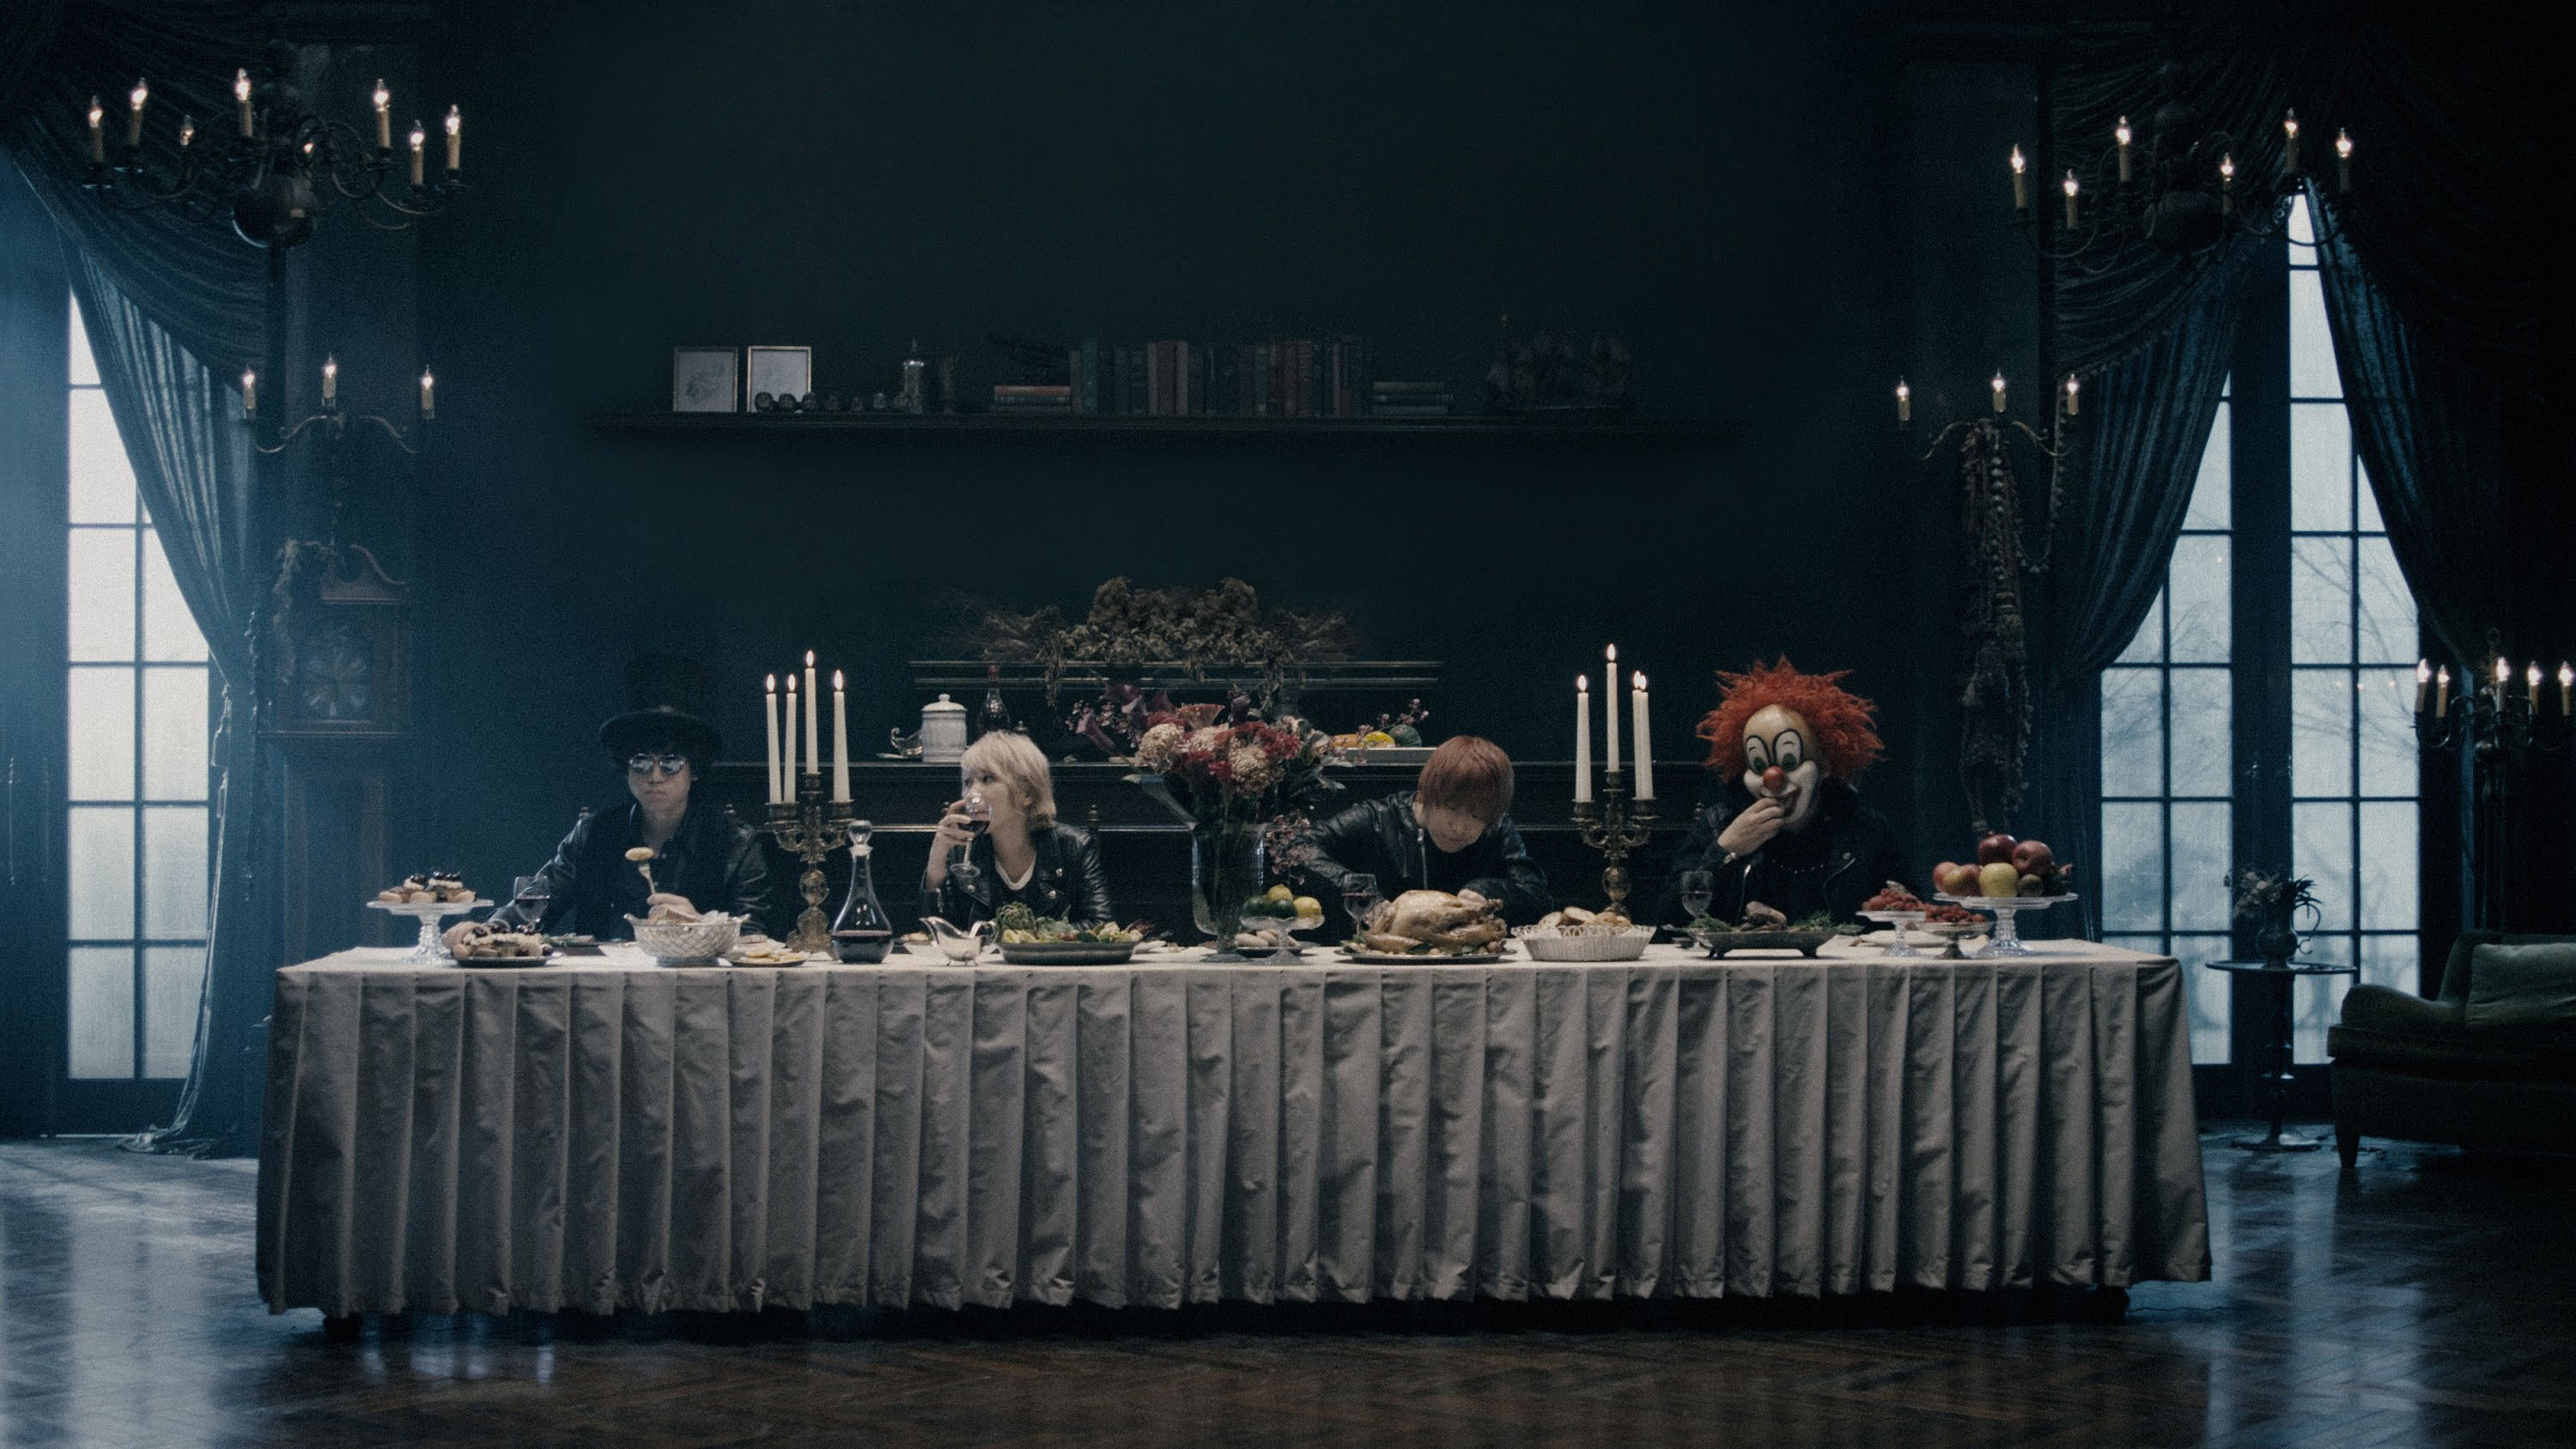 SEKAI NO OWARI on their first English language album and highlights of their career so far